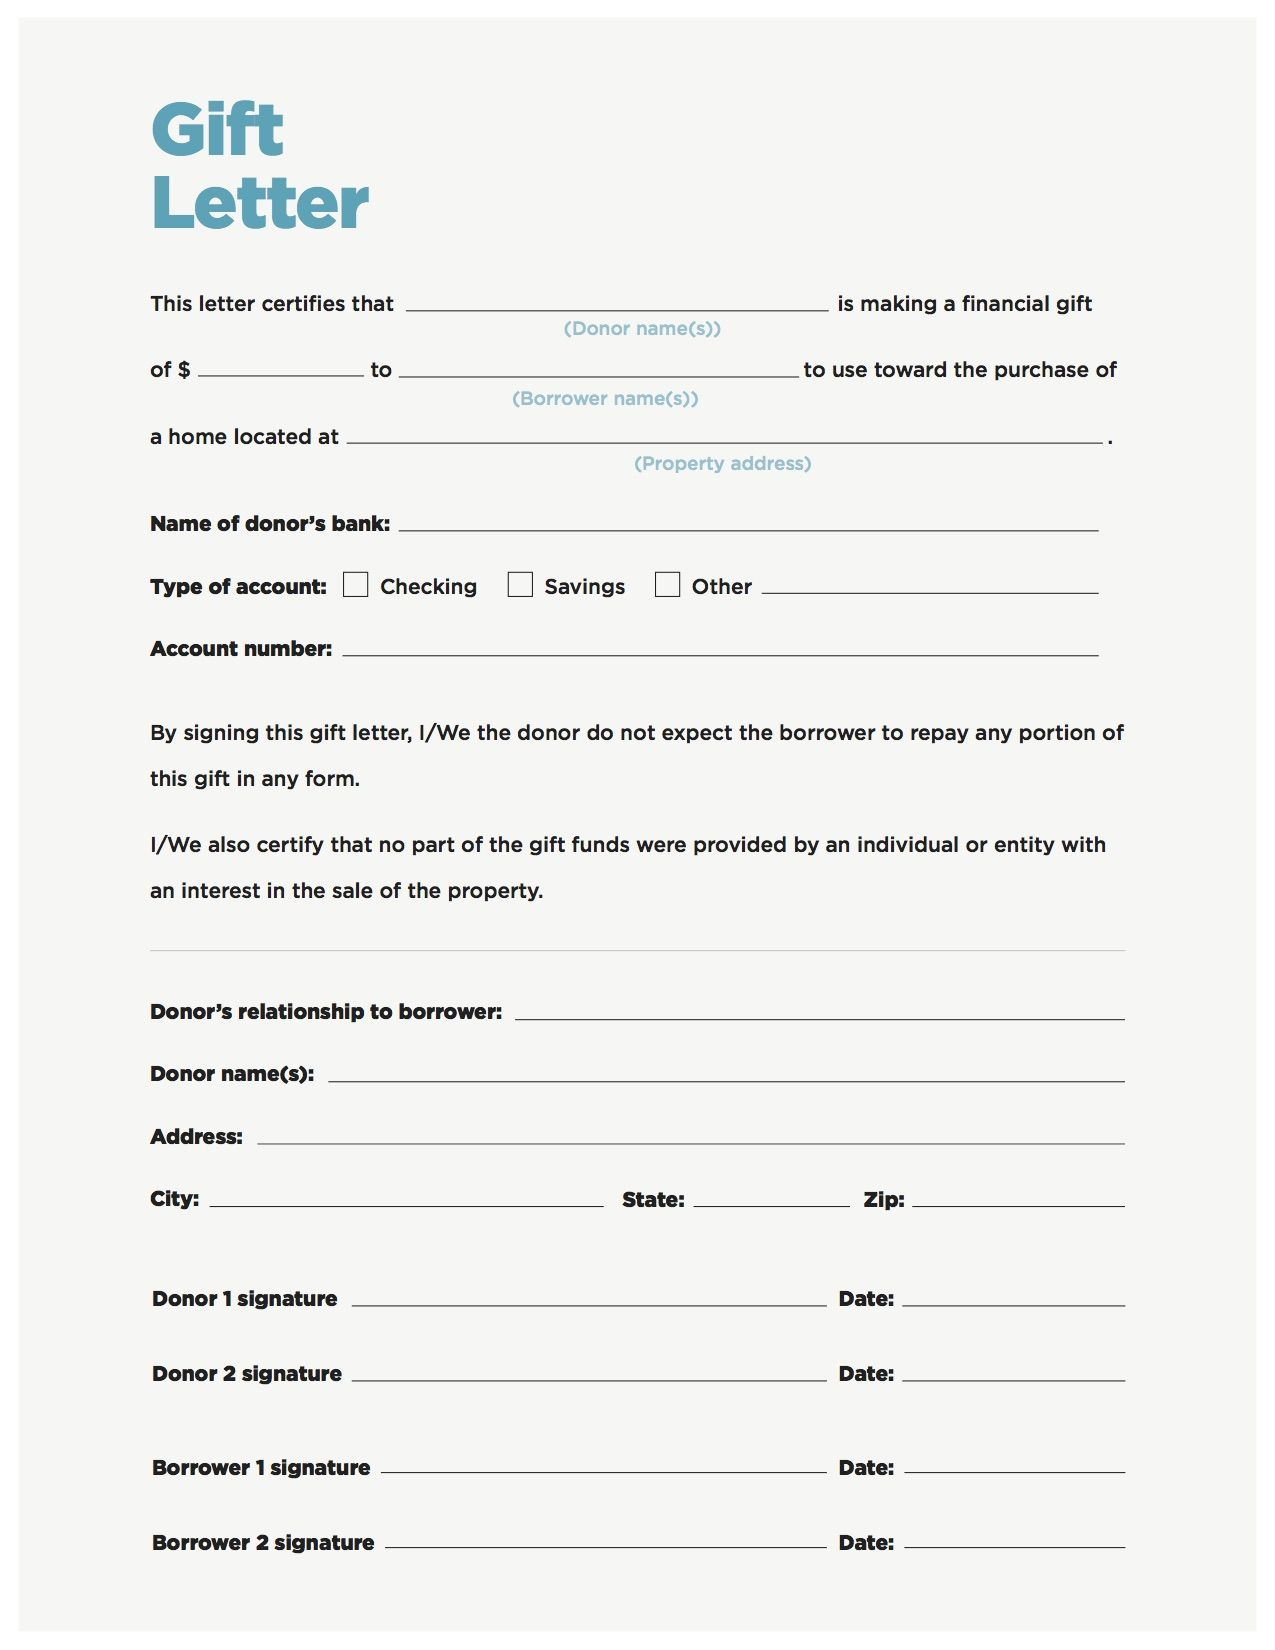 Gift Money Can Meet Your Down Payment Needs Letter Templates